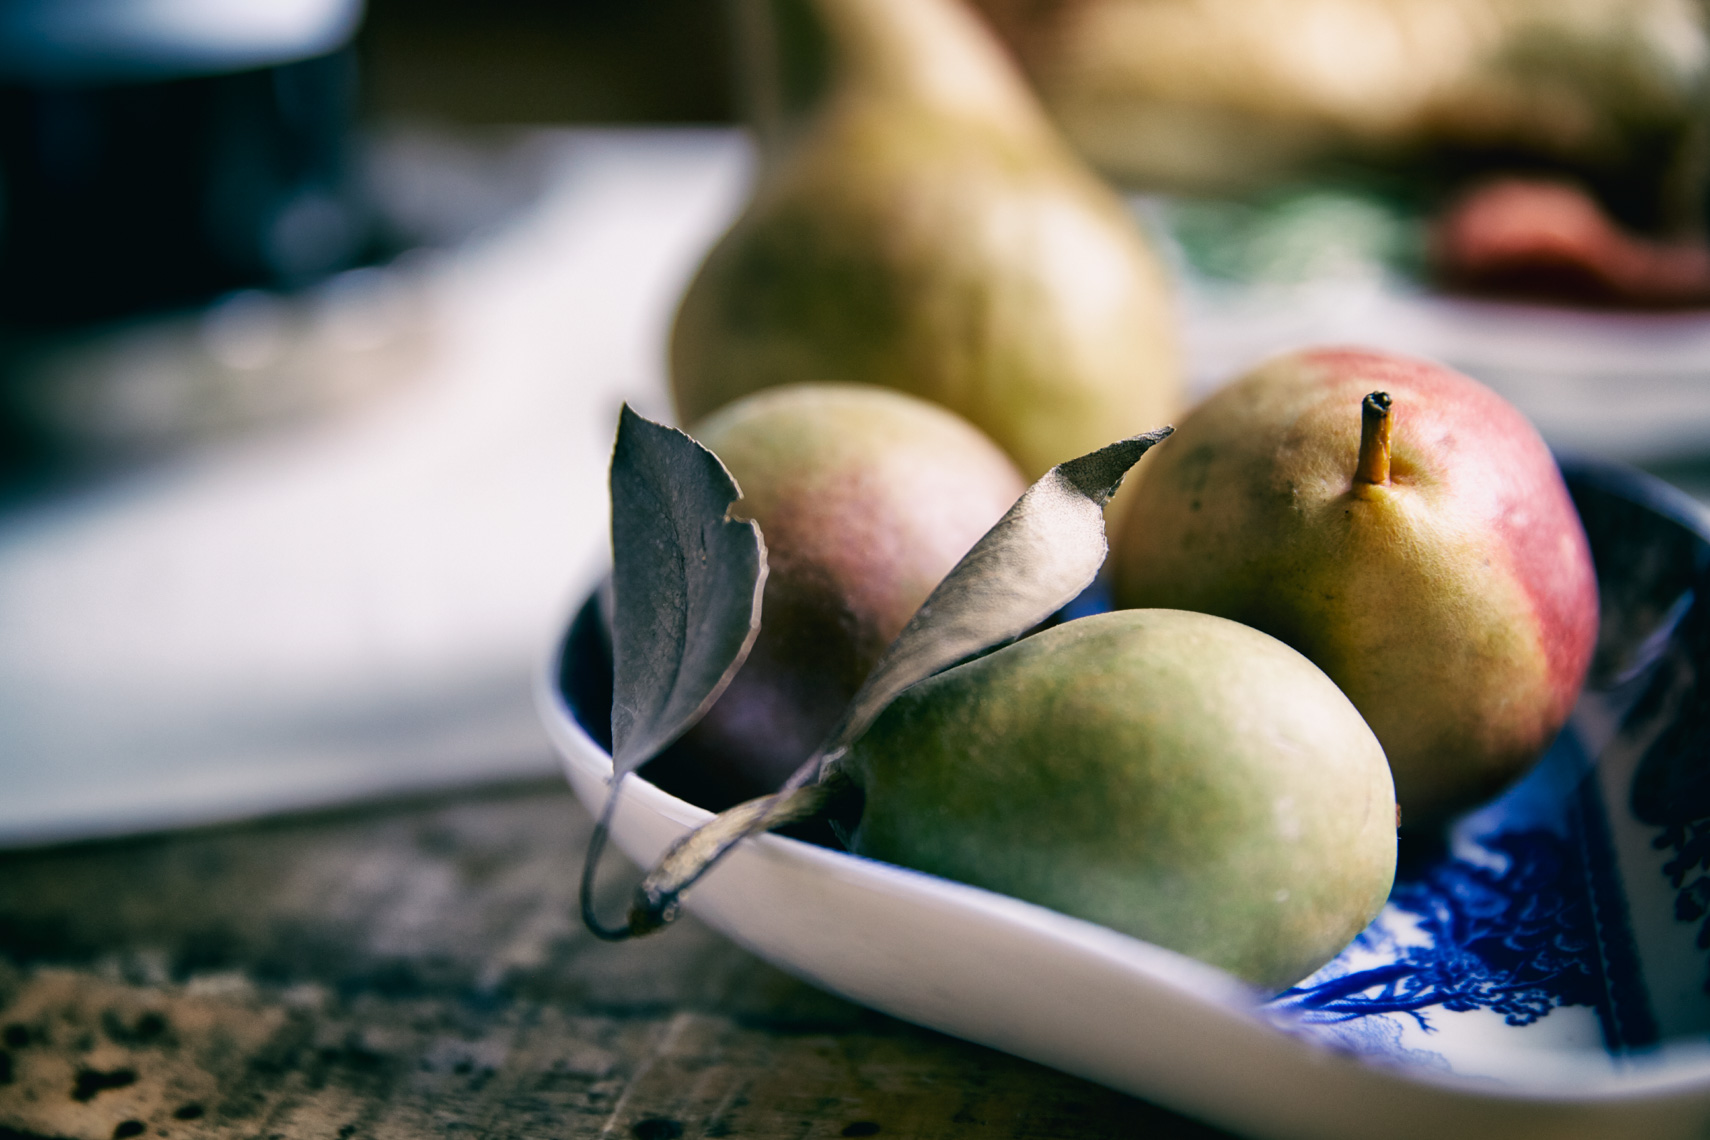 Pears with leaves in bowl hilip Harvey Photography, San Francisco, California, still life, interiors, food, lifestyle and product photography